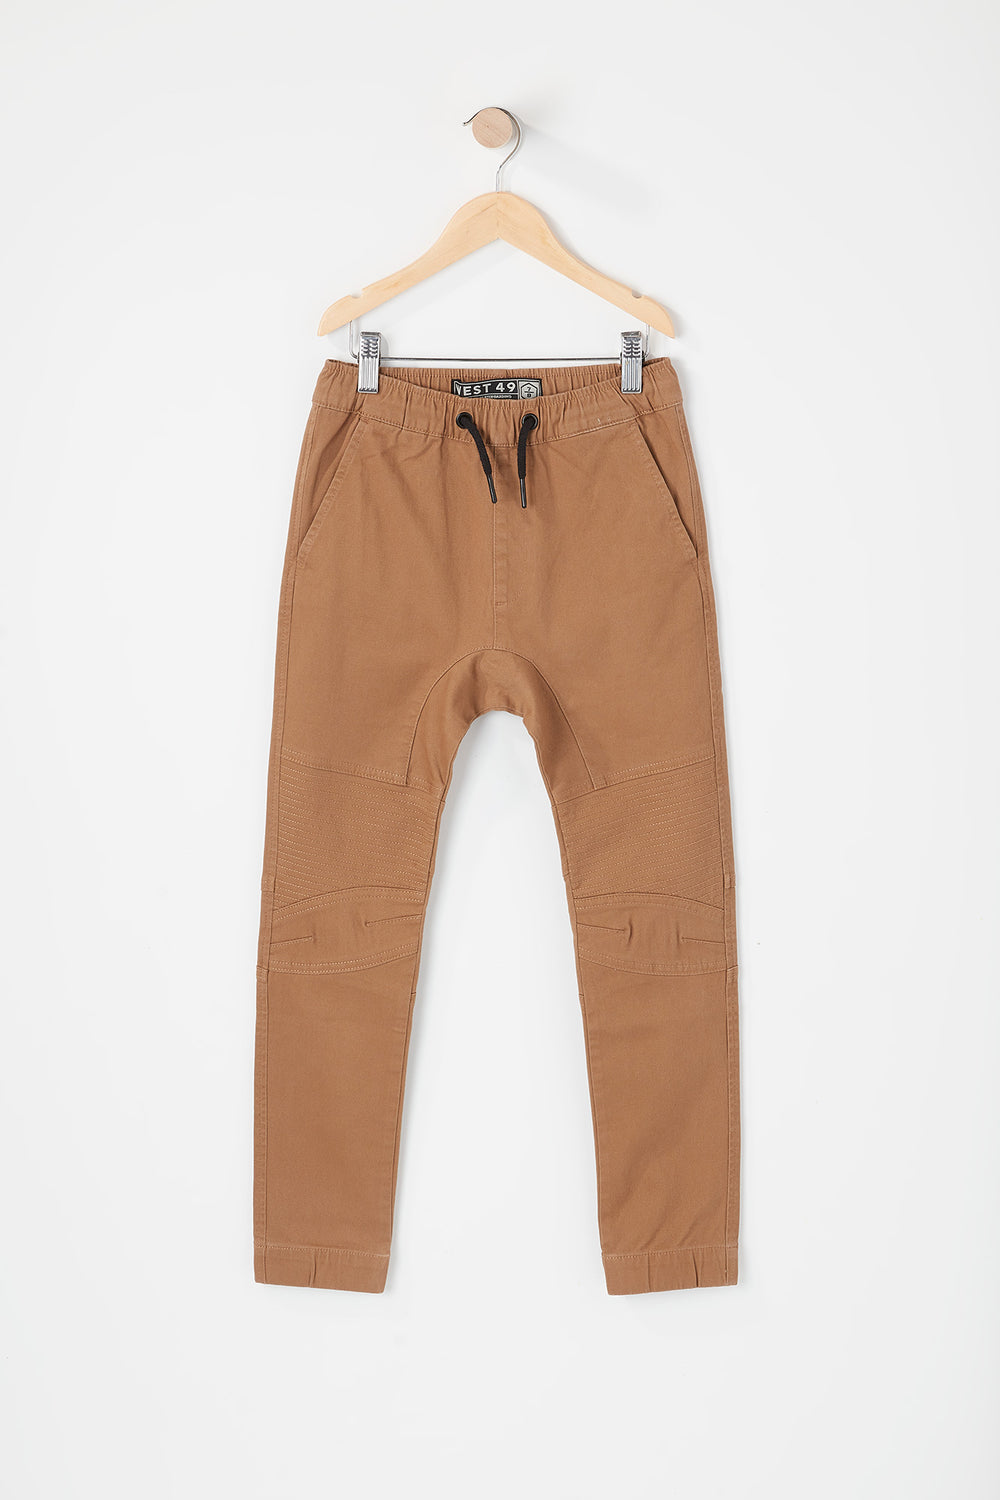 West49 Youth Moto Jogger Camel